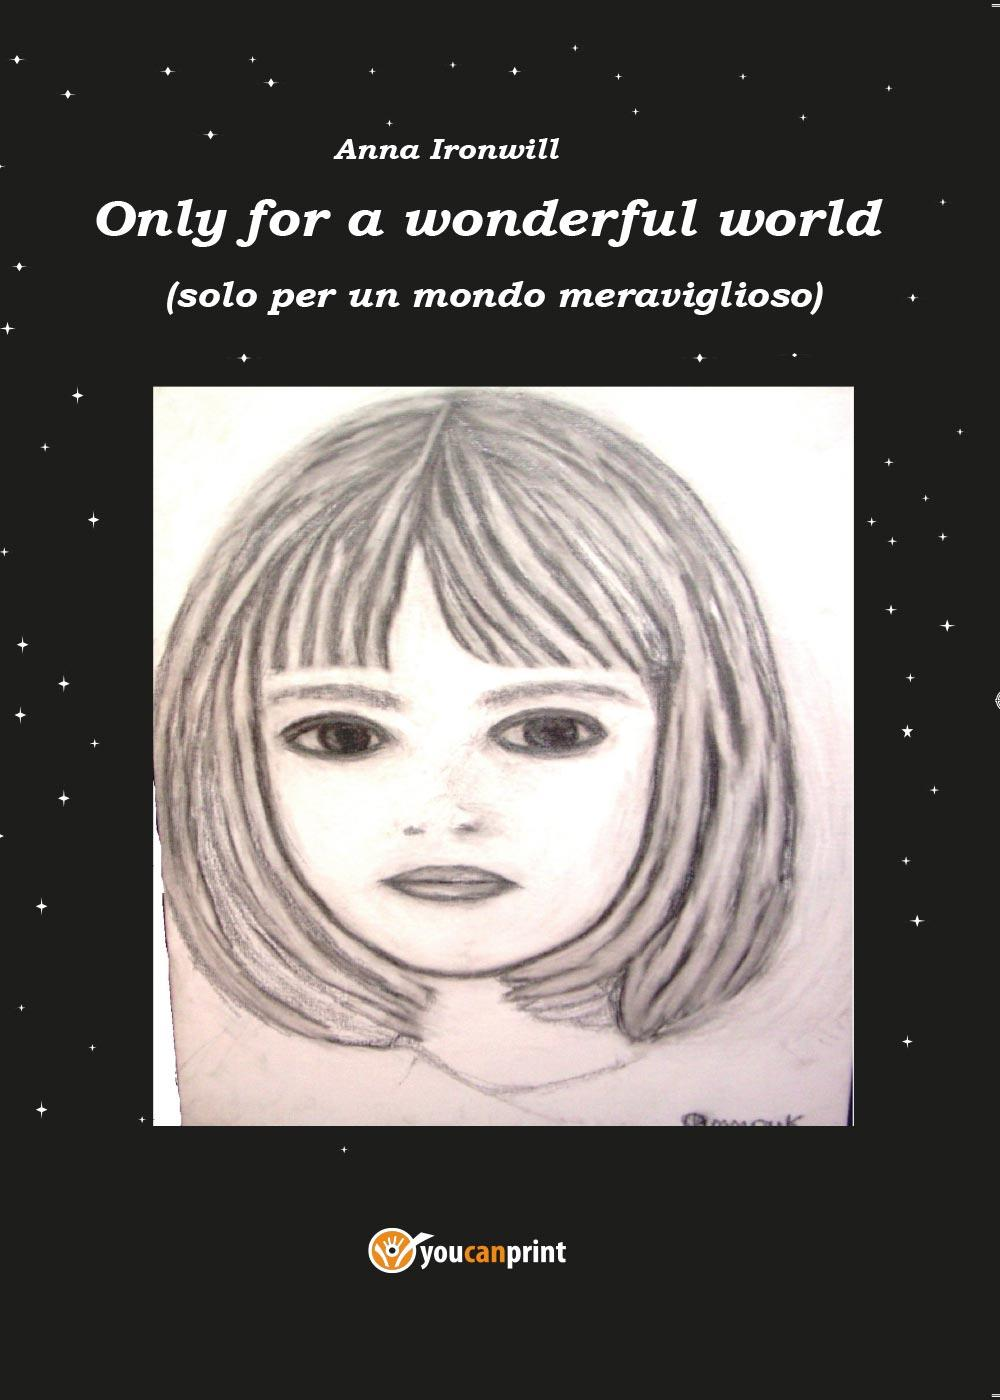 Only for a wonderful world